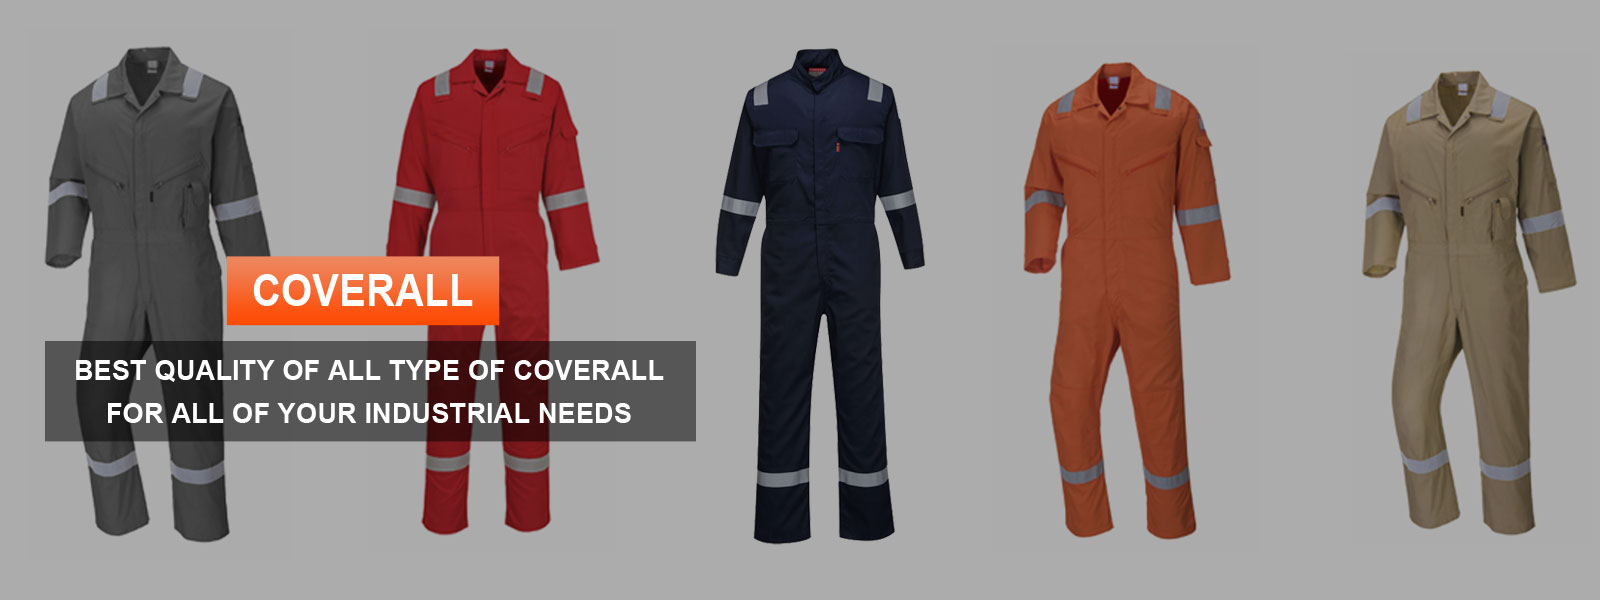 Coverall Manufacturers in Qatar